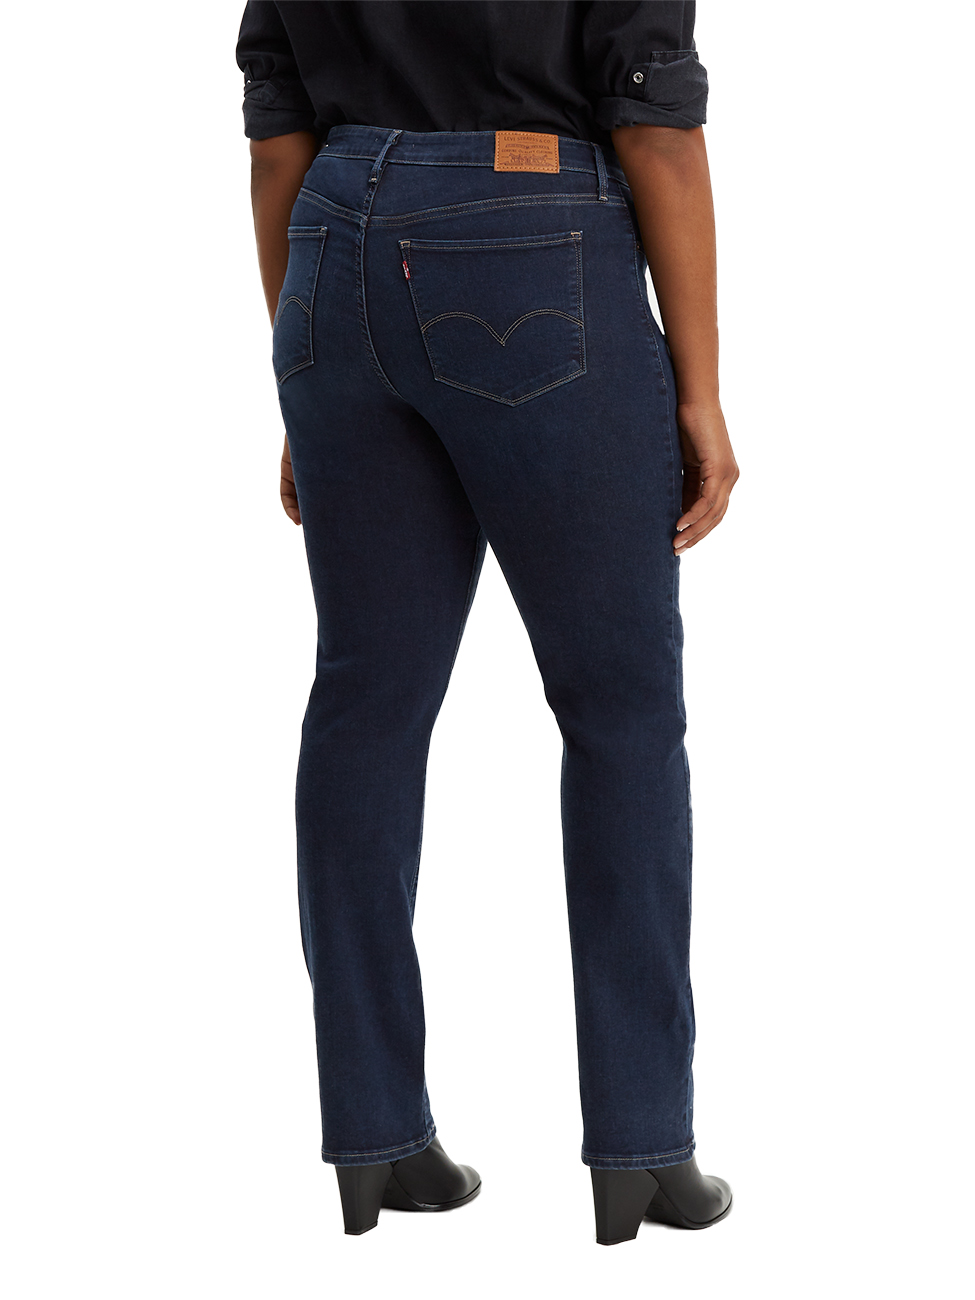 new product 70e32 eac32 Levis® Damen Jeans 314 Shaping Straight Fit - Blau - Dark Horse Plus